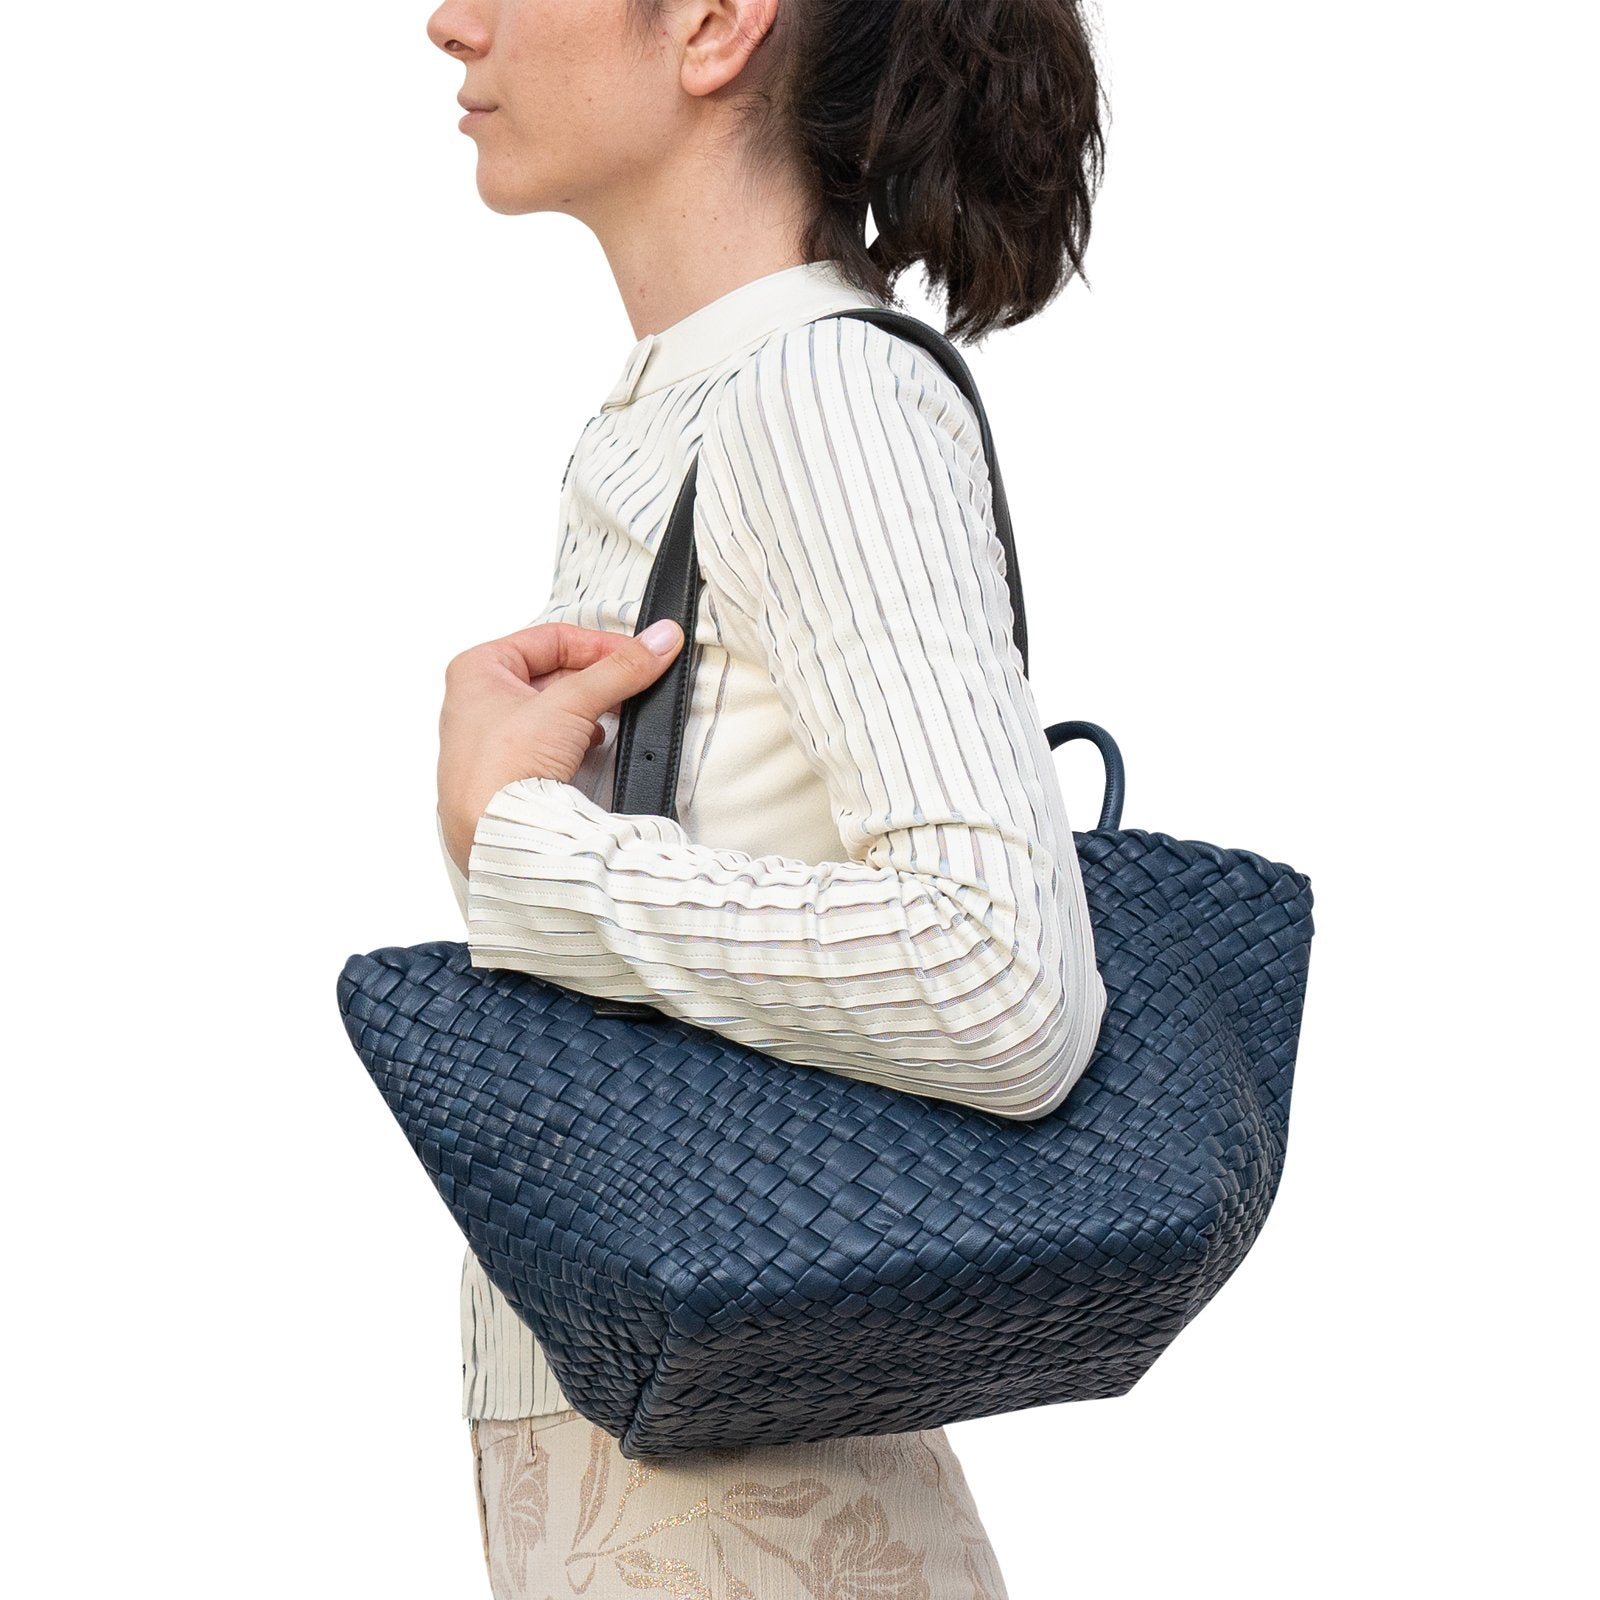 Women Intrecciato Squared Tote Bag in Navy Blue - Jennifer Tattanelli